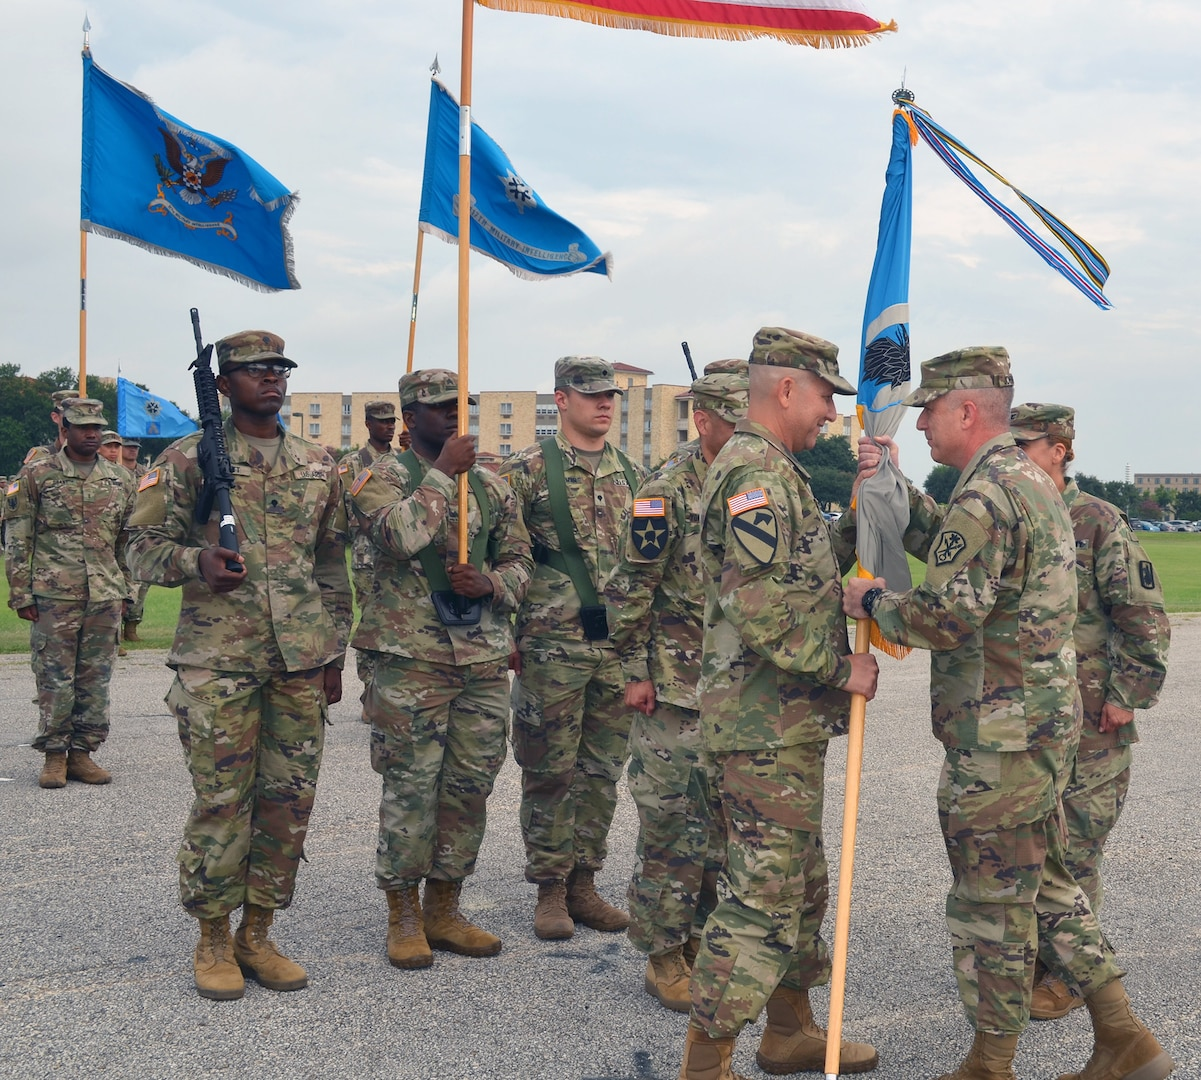 Col. Daniel Allen (left), 470th Military Intelligence Brigade incoming commander, accepts the brigade's guidon from Maj. Gen. Gary Johnston, U.S. Army Intelligence and Security Command commanding general (right), during the brigade's change of command ceremony at MacArthur Parade Field at Joint Base San Antonio-Fort Sam Houston July 9. Johnston was the presiding officer for the ceremony.